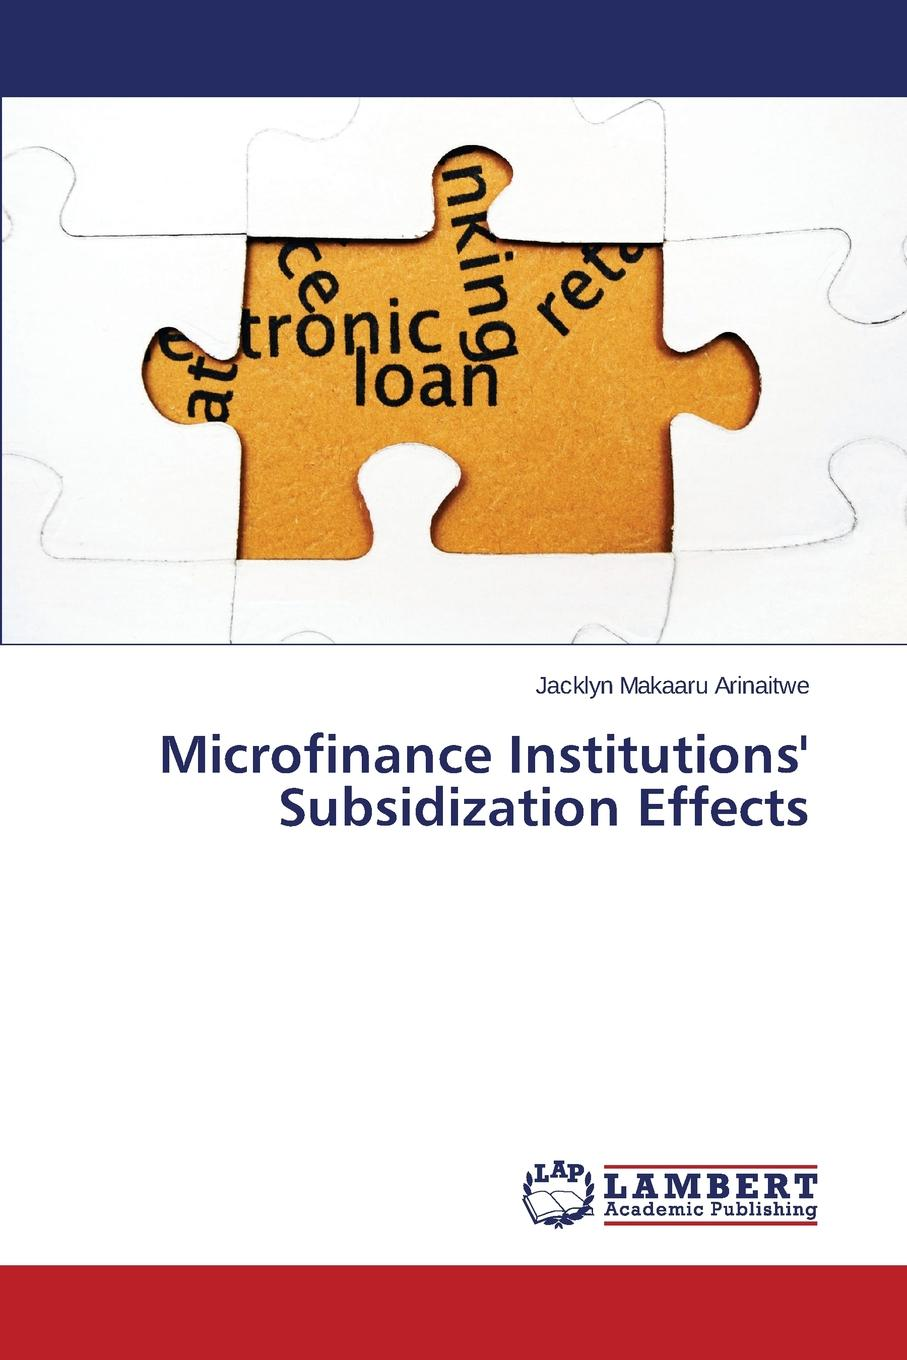 Microfinance Institutions. Subsidization Effects The original mission of microfinance was to alleviate poverty. Times...